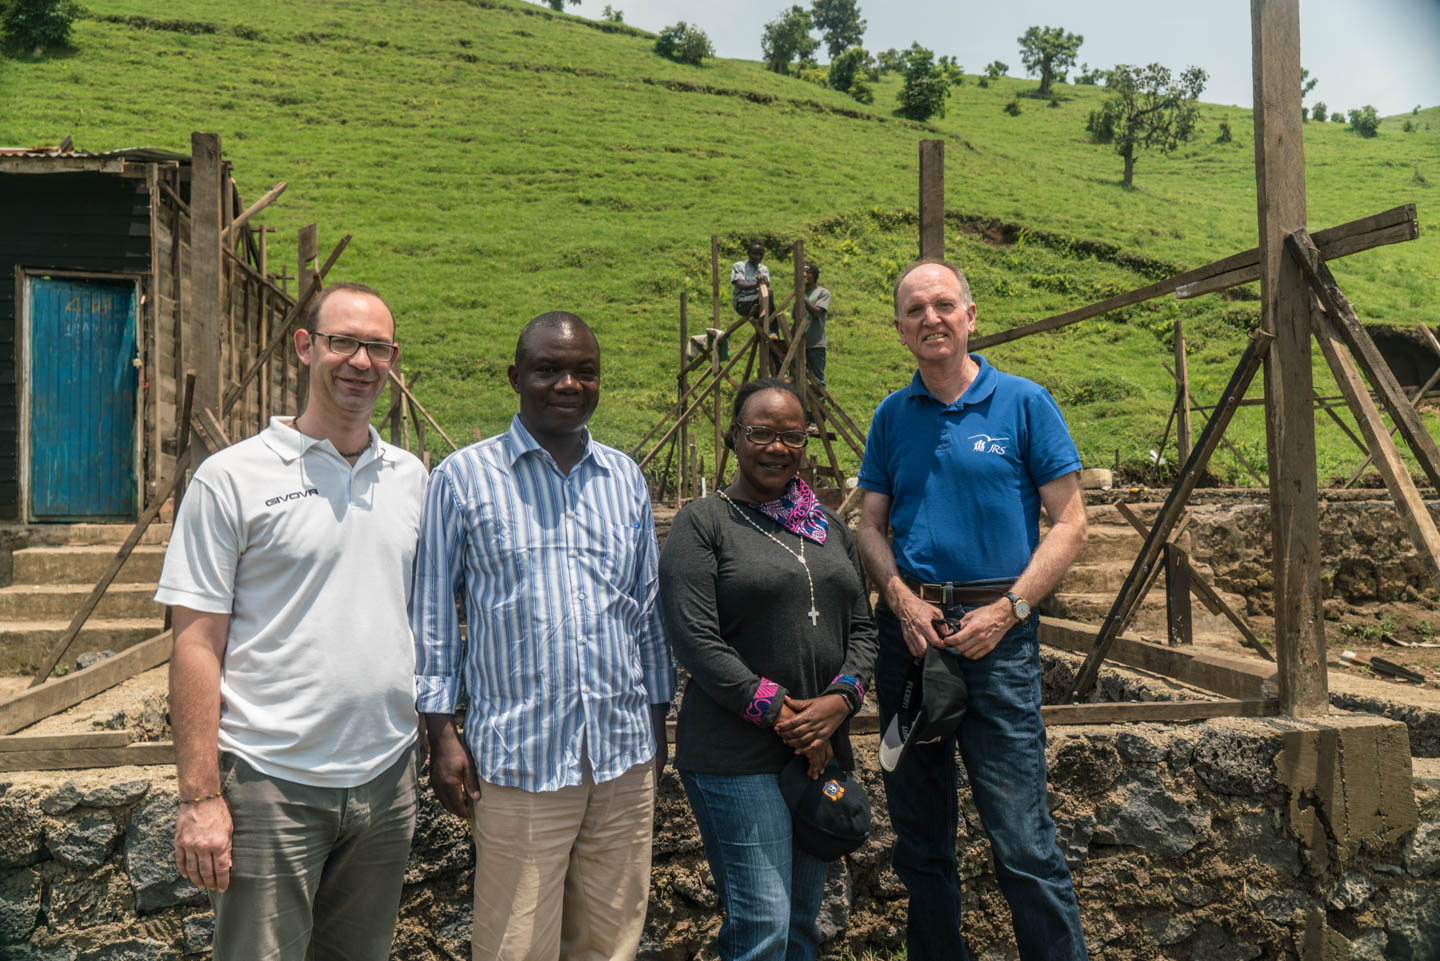 Fr. Tom Smolich, International director of Jesuit Refugee Service, visits a JRS sponsored school building site with the local coordinator, a local priest and the construction manager, Lillan.